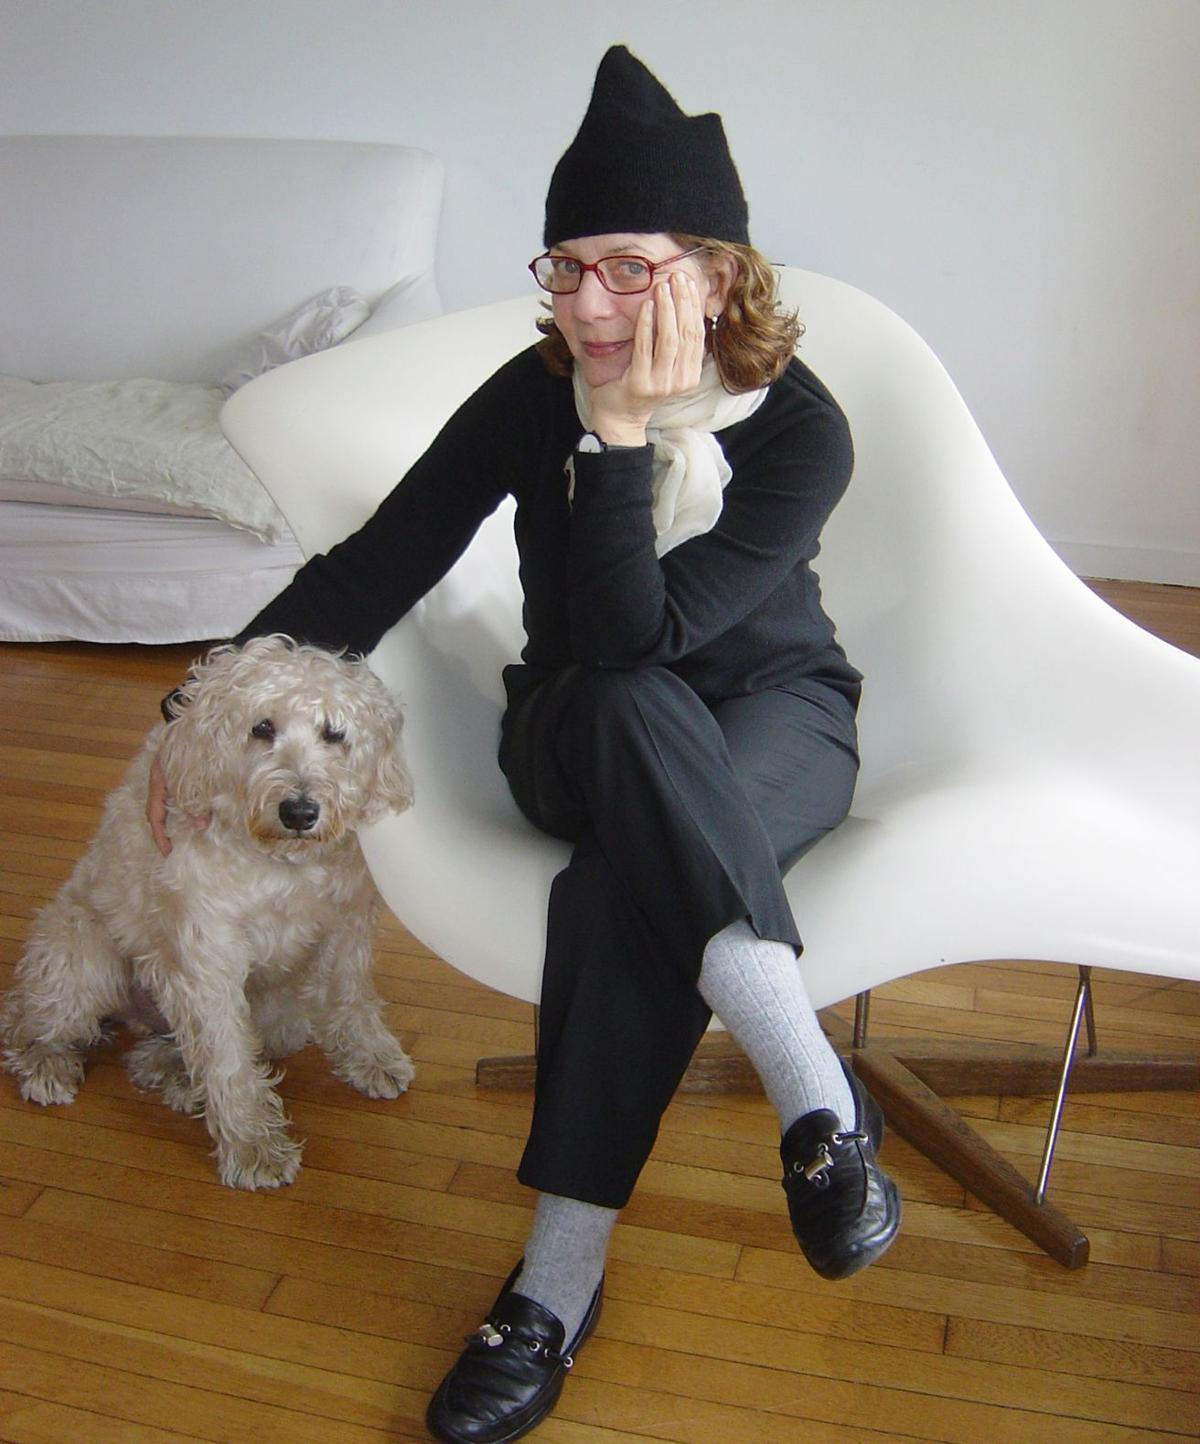 061919_MNS_High_Kalman_001 Maira Kalman with her dog Pete